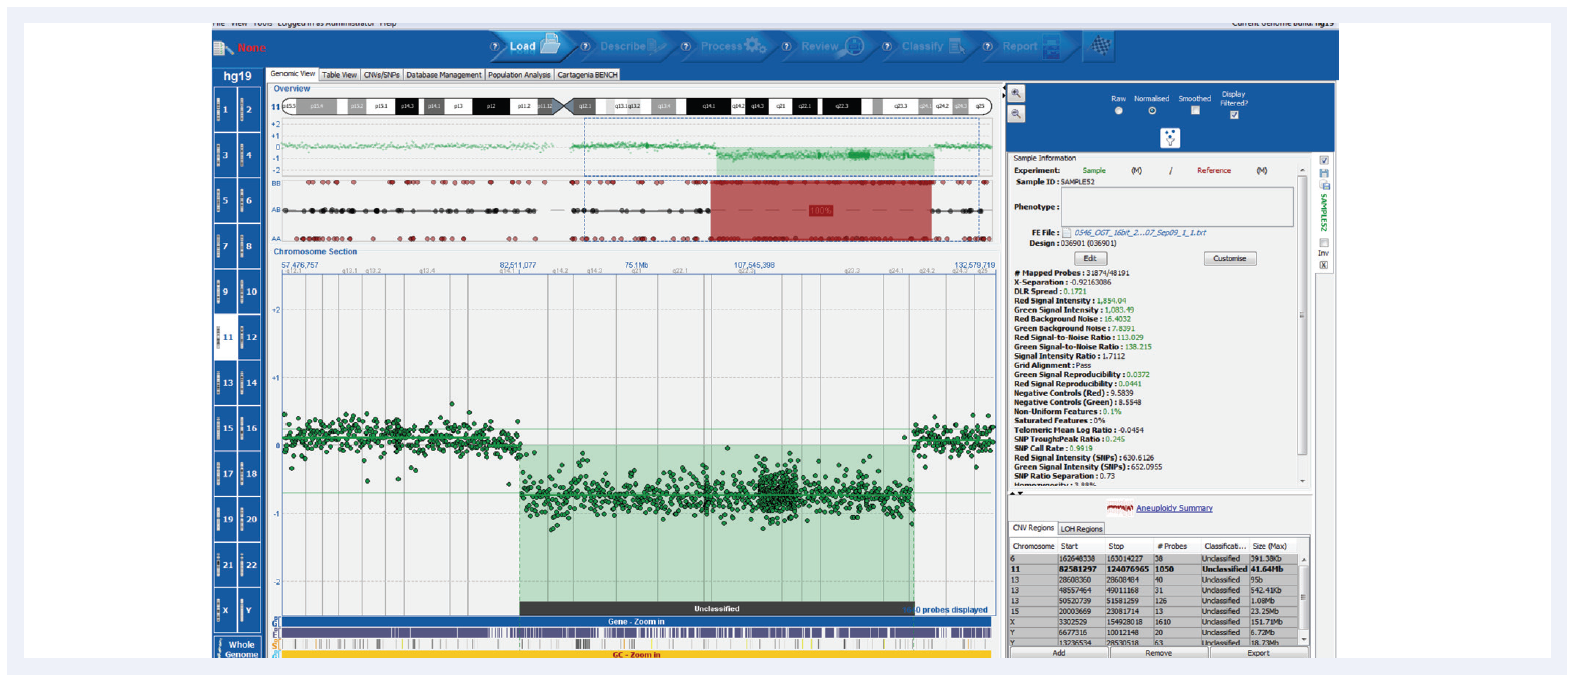 Figure 3. Shown here is a CLL research sample run on the CytoSure Consortium Cancer +SNP array (8x60k) with a deletion and corresponding LOH. CytoSure Interpret offers an intuitive user interface for easy interpretation of genetic findings. Samples kindly provided by Dr Jon Strefford, University of Southampton.